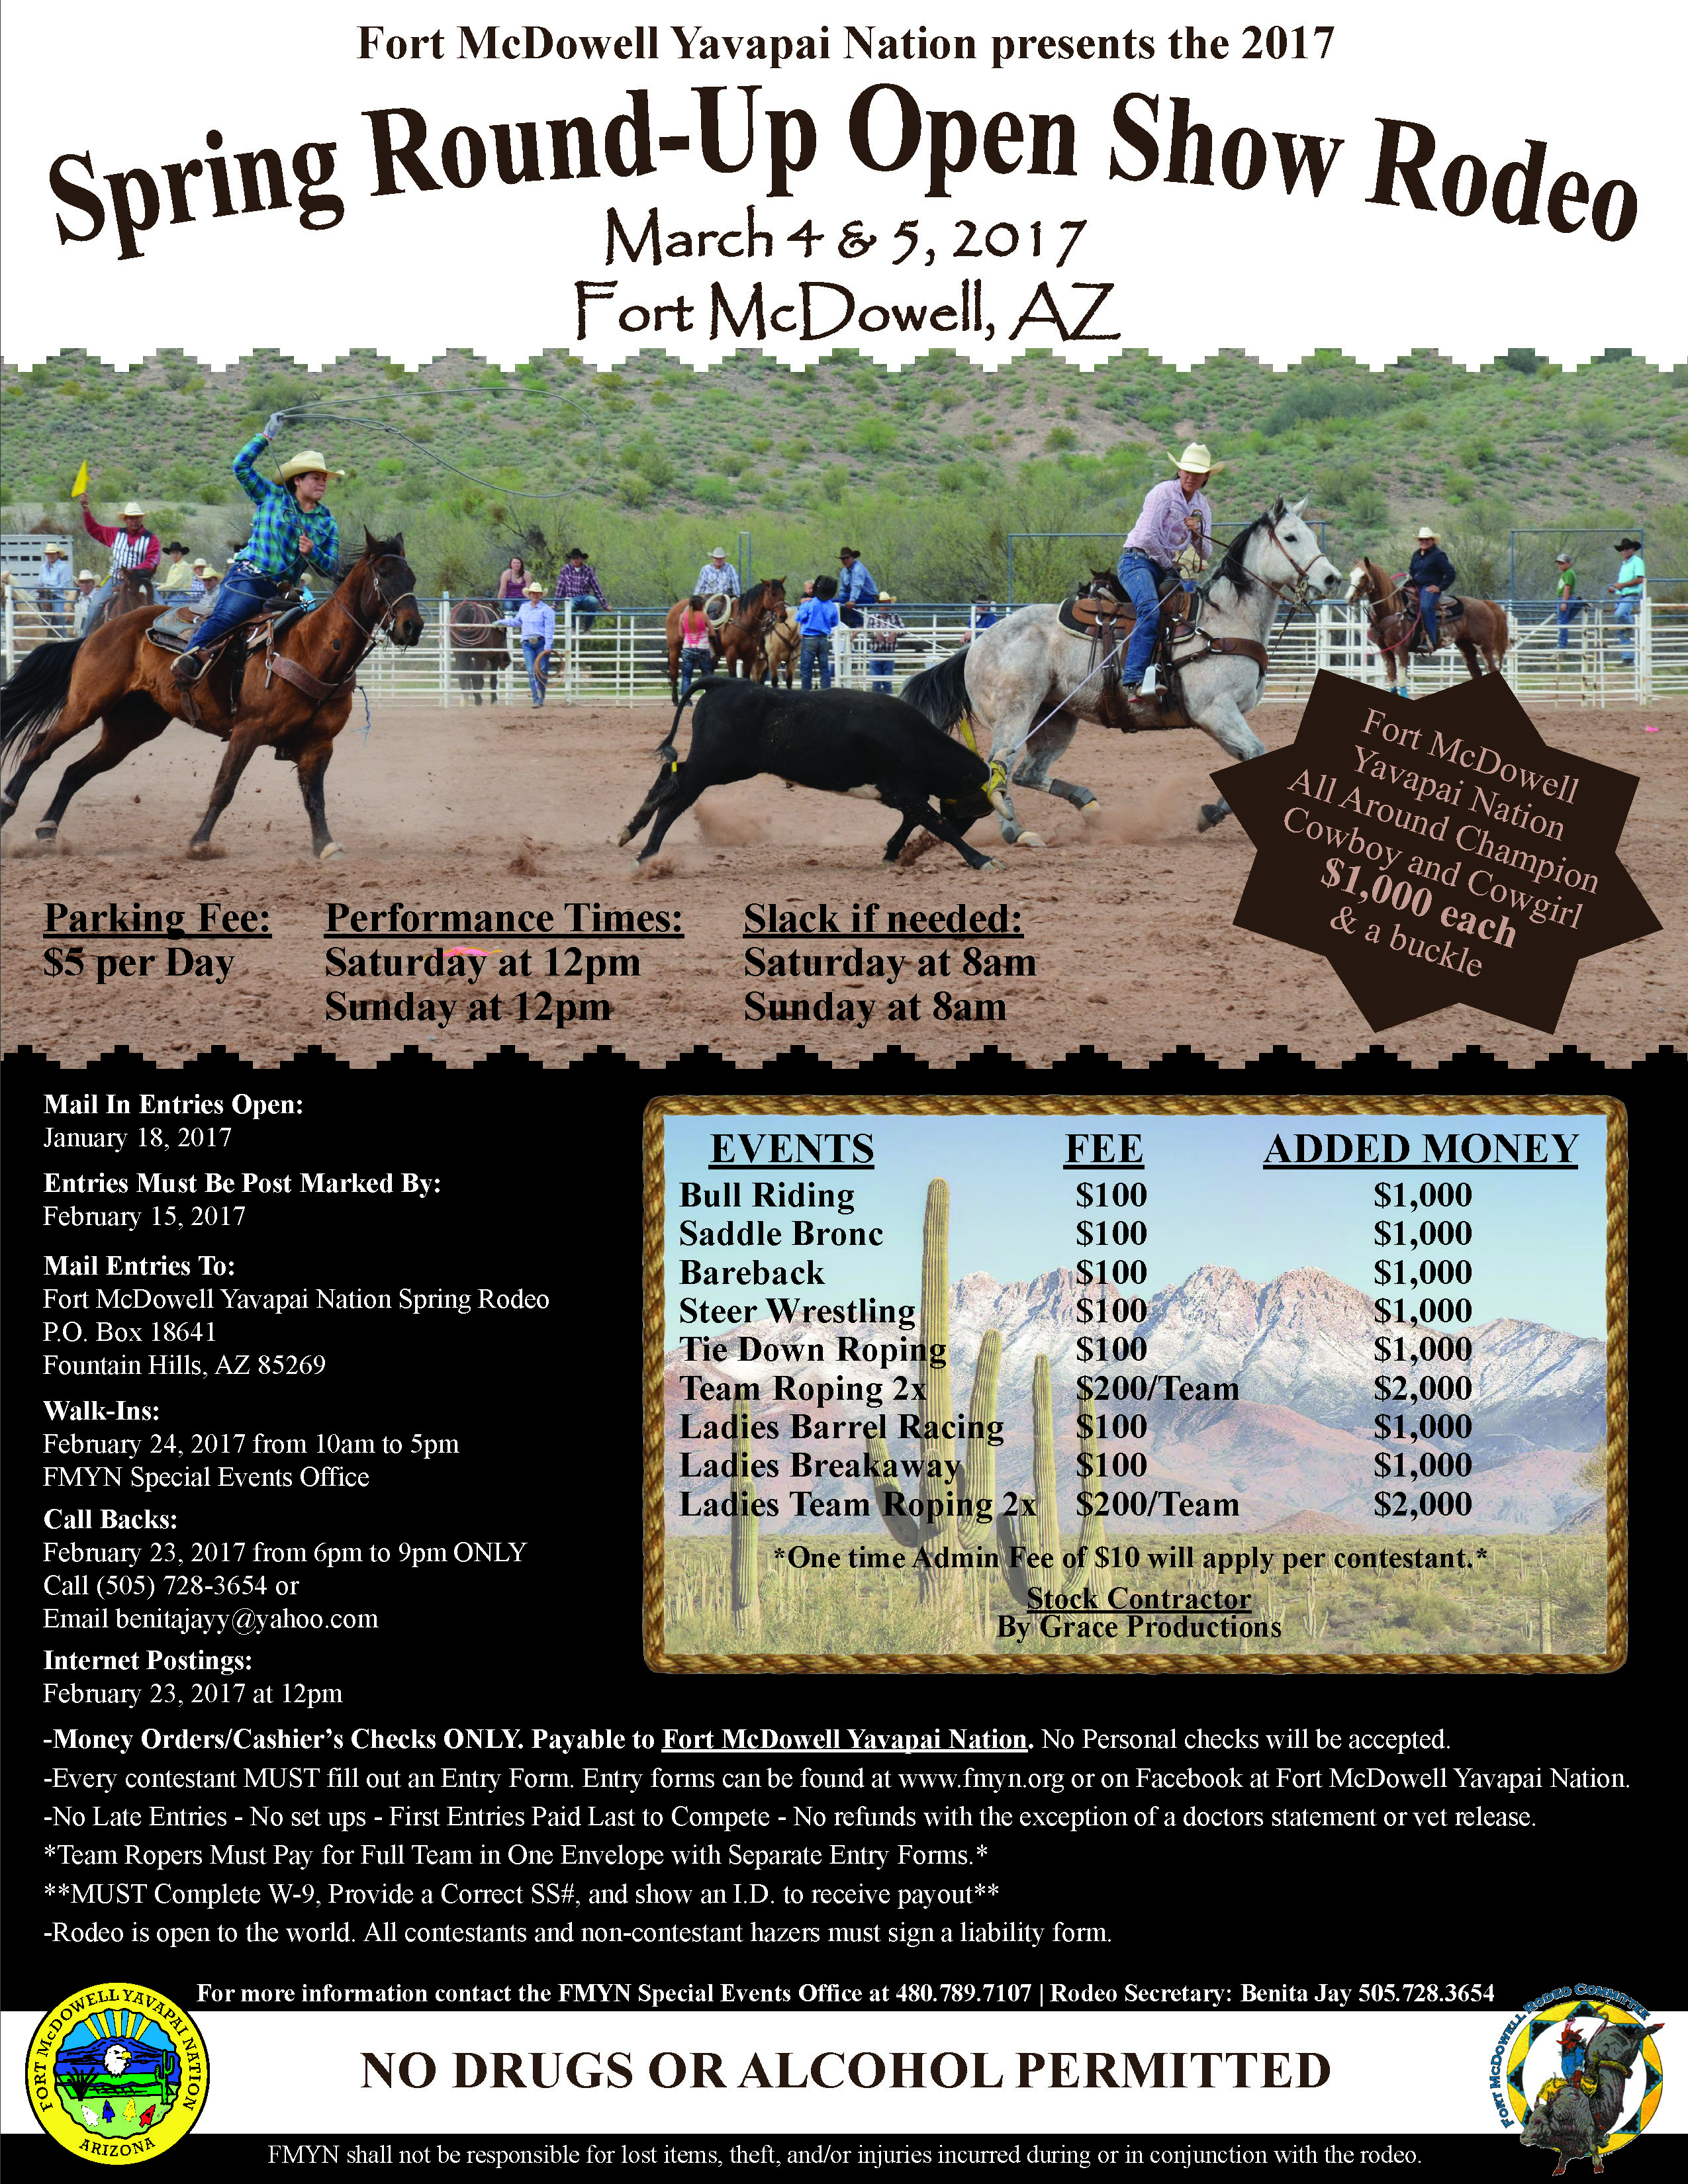 Spring Round Up Rodeo Fort Mcdowell Yavapai Nation